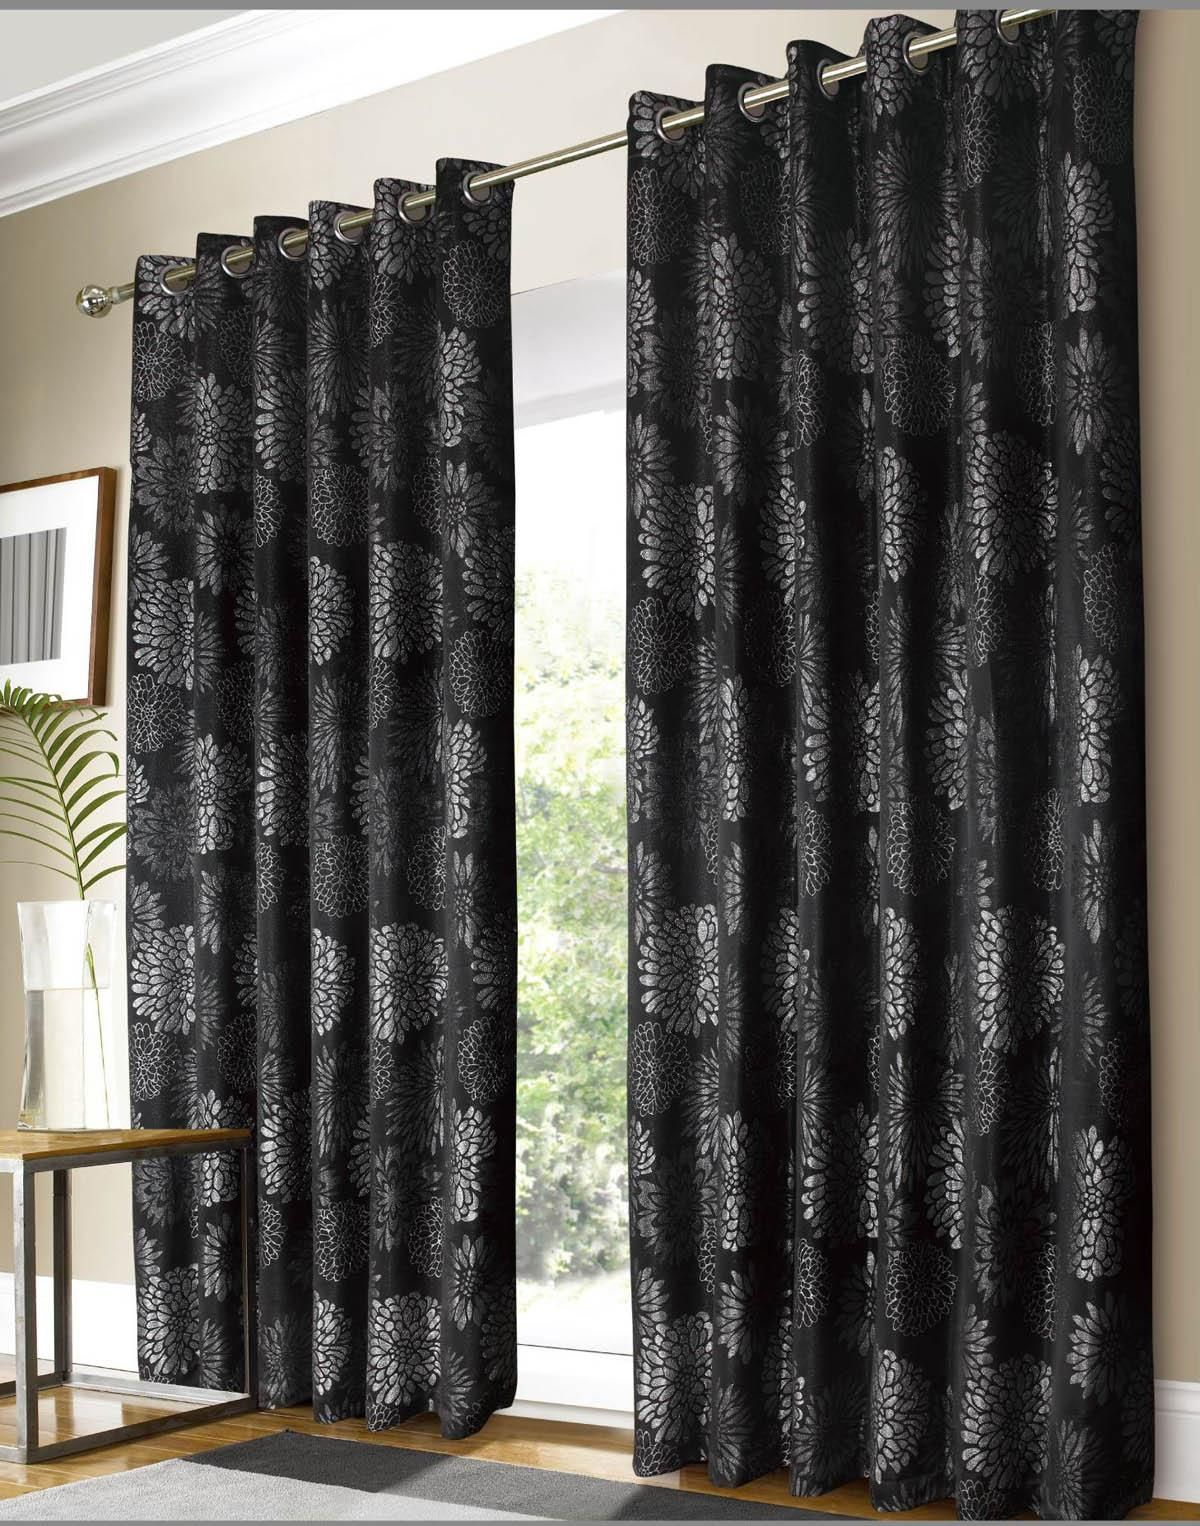 Dark purple patterned curtains - Black And Silver Curtains Images